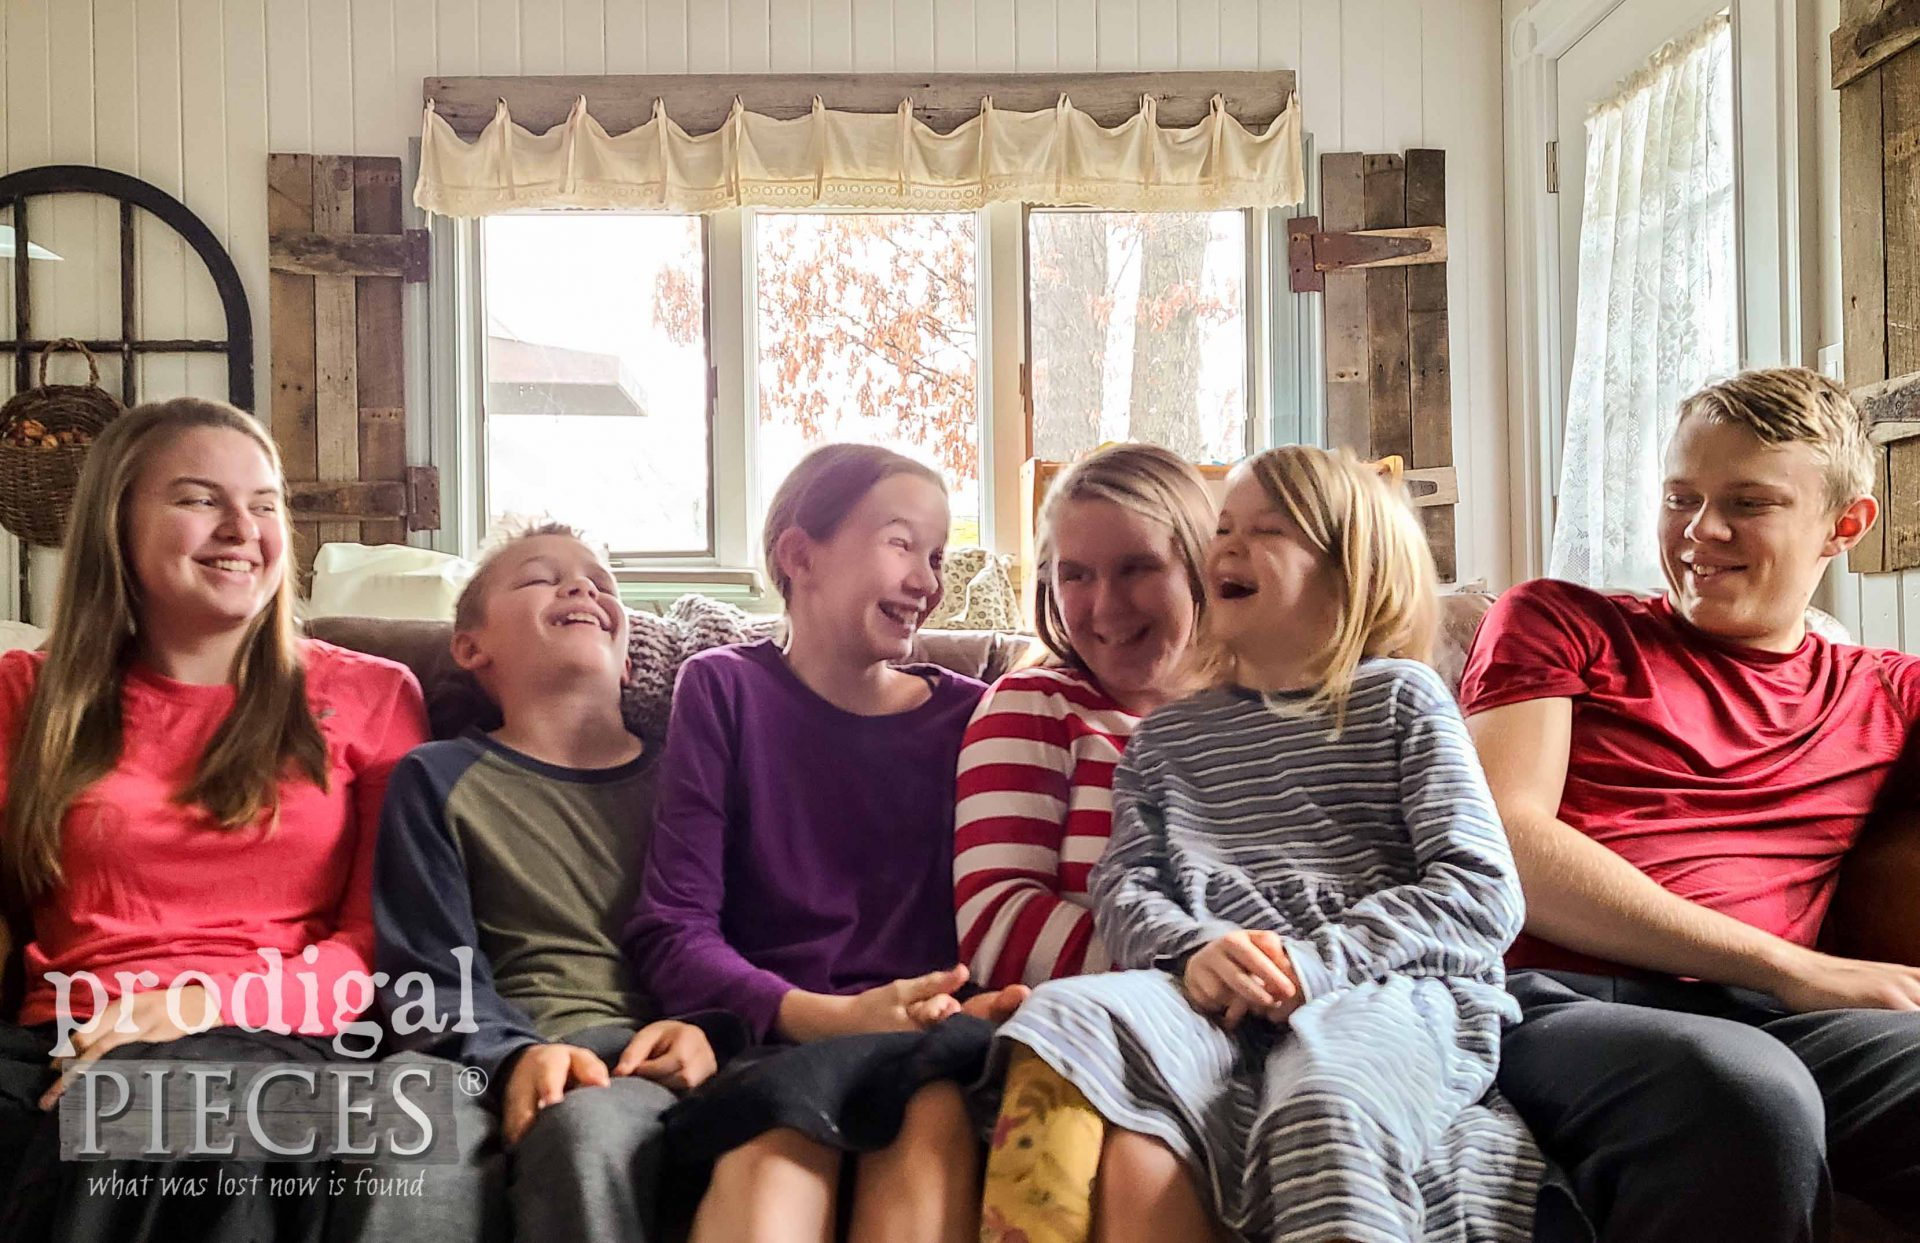 Kids Laughing with Thankfulness | Prodigal Pieces | prodigalpieces.com #prodigalpieces